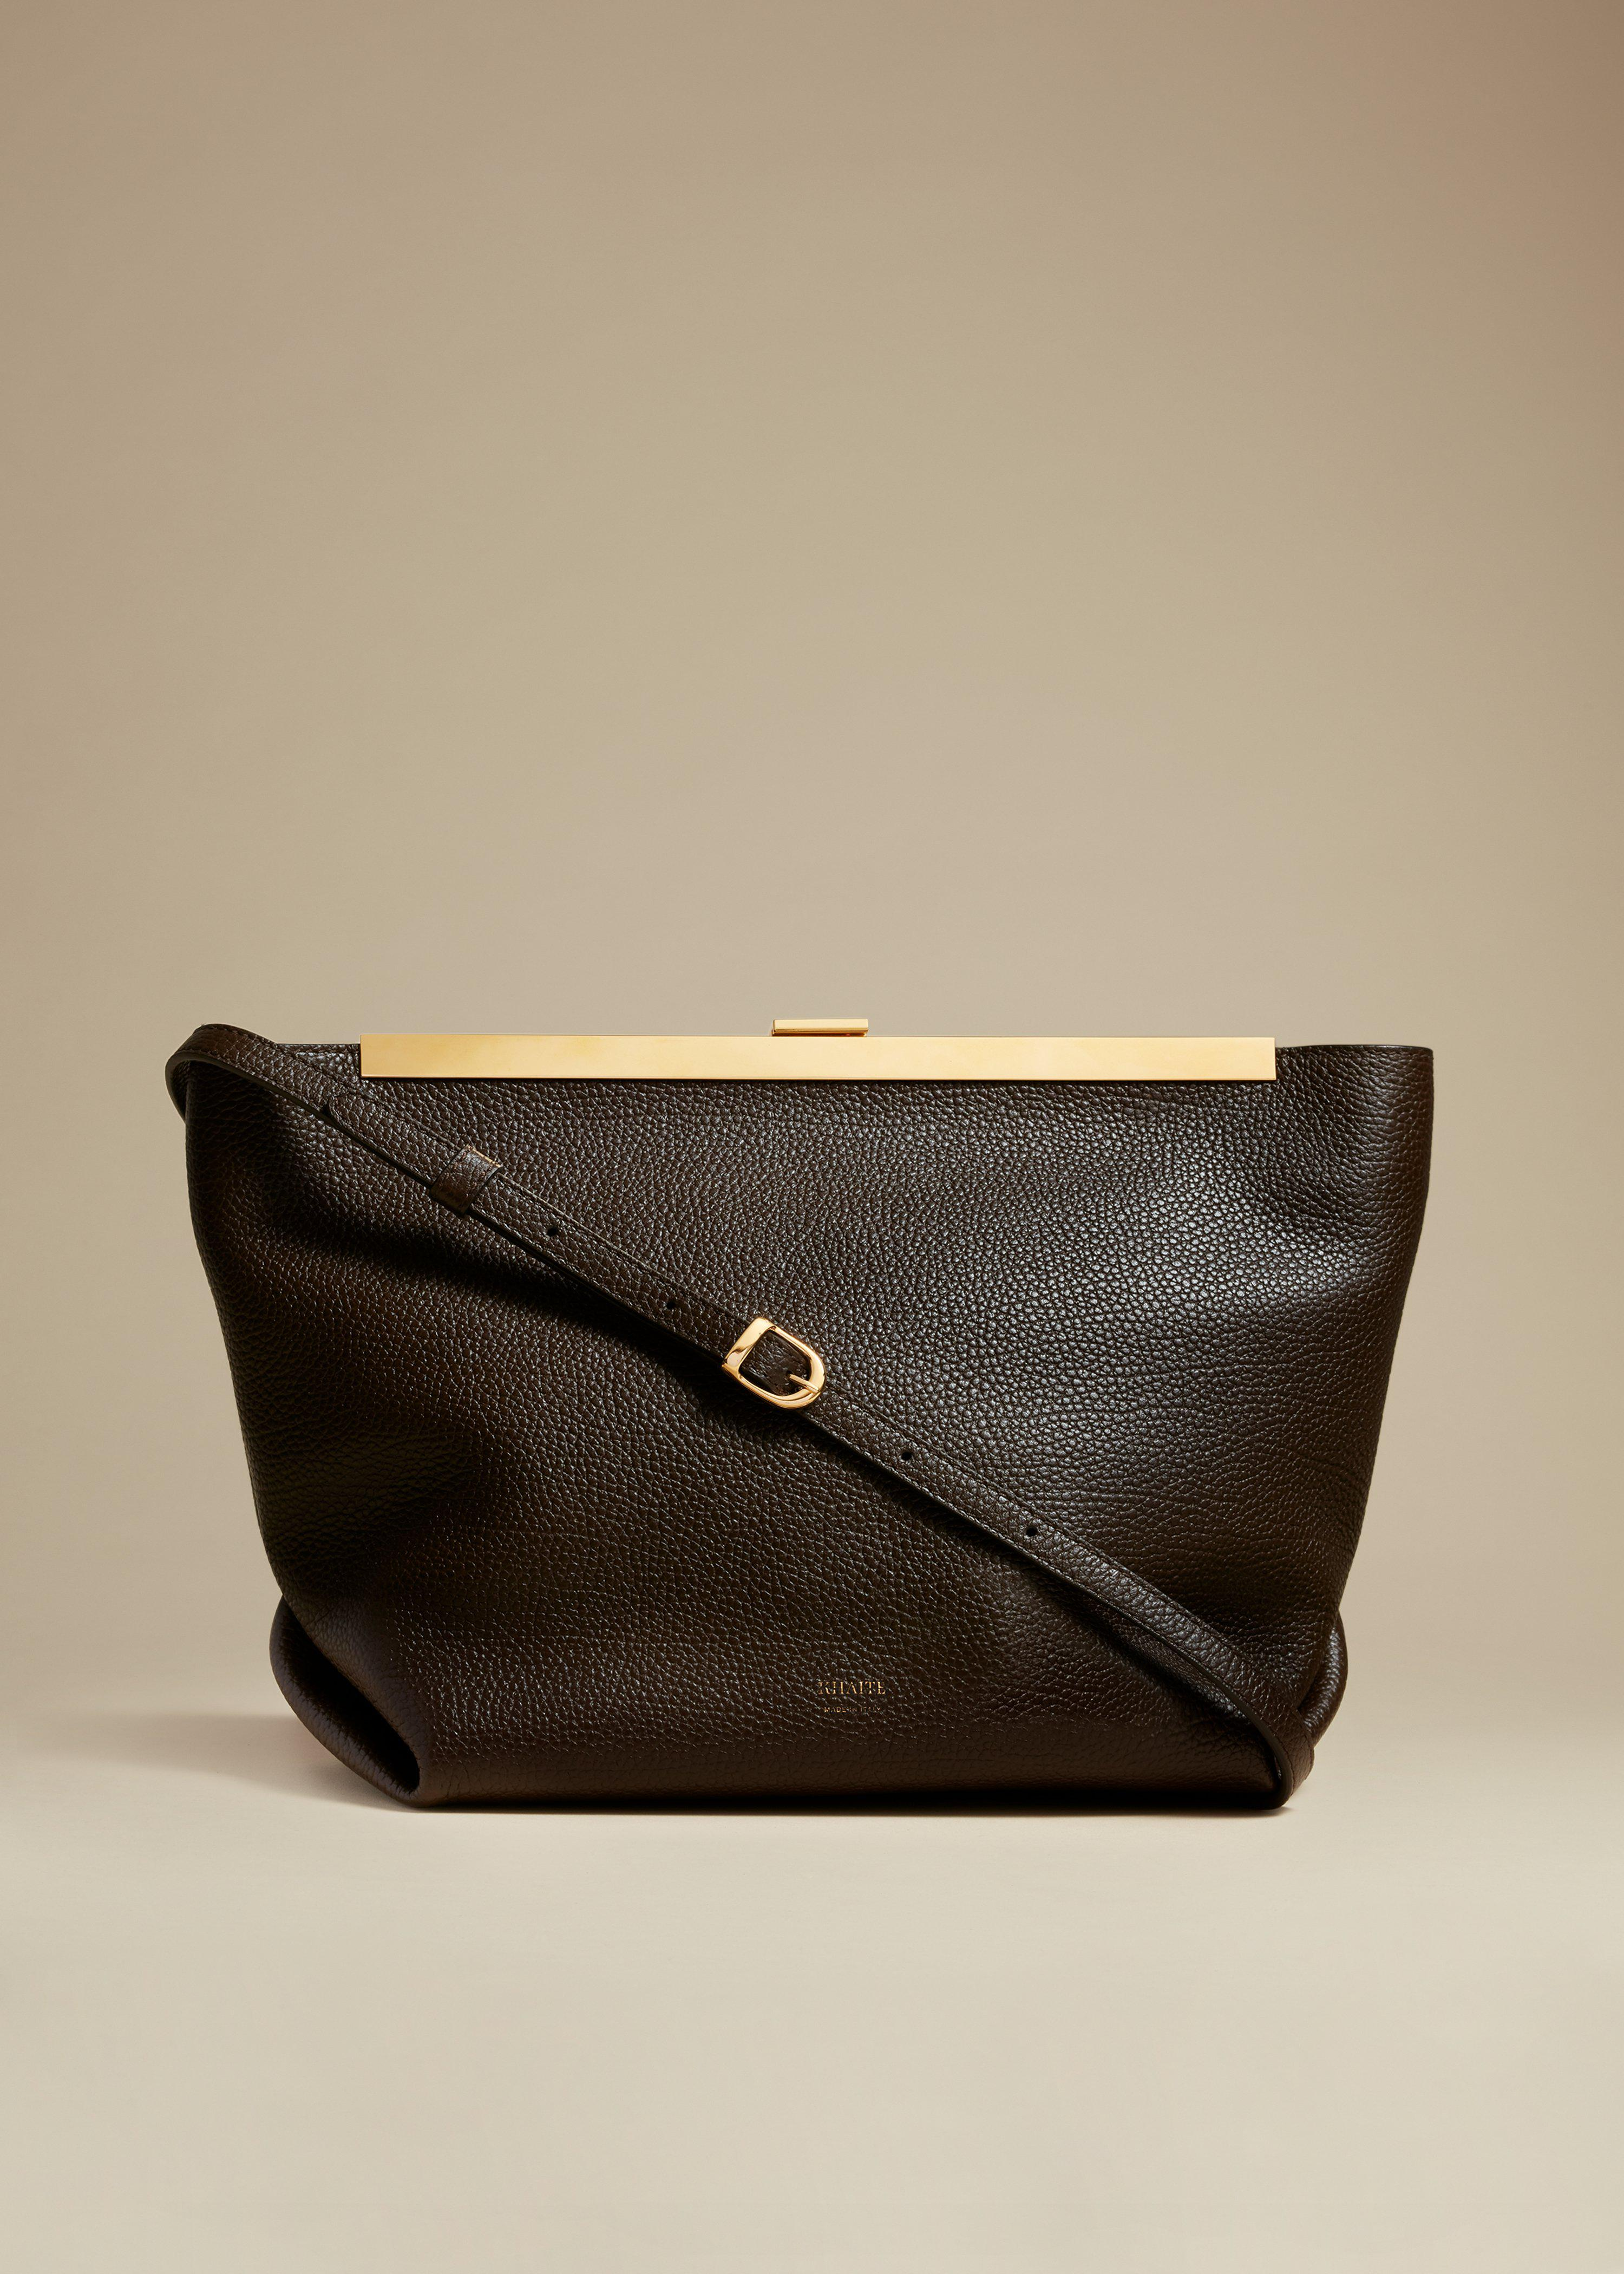 The Augusta Crossbody Bag in Chocolate Leather